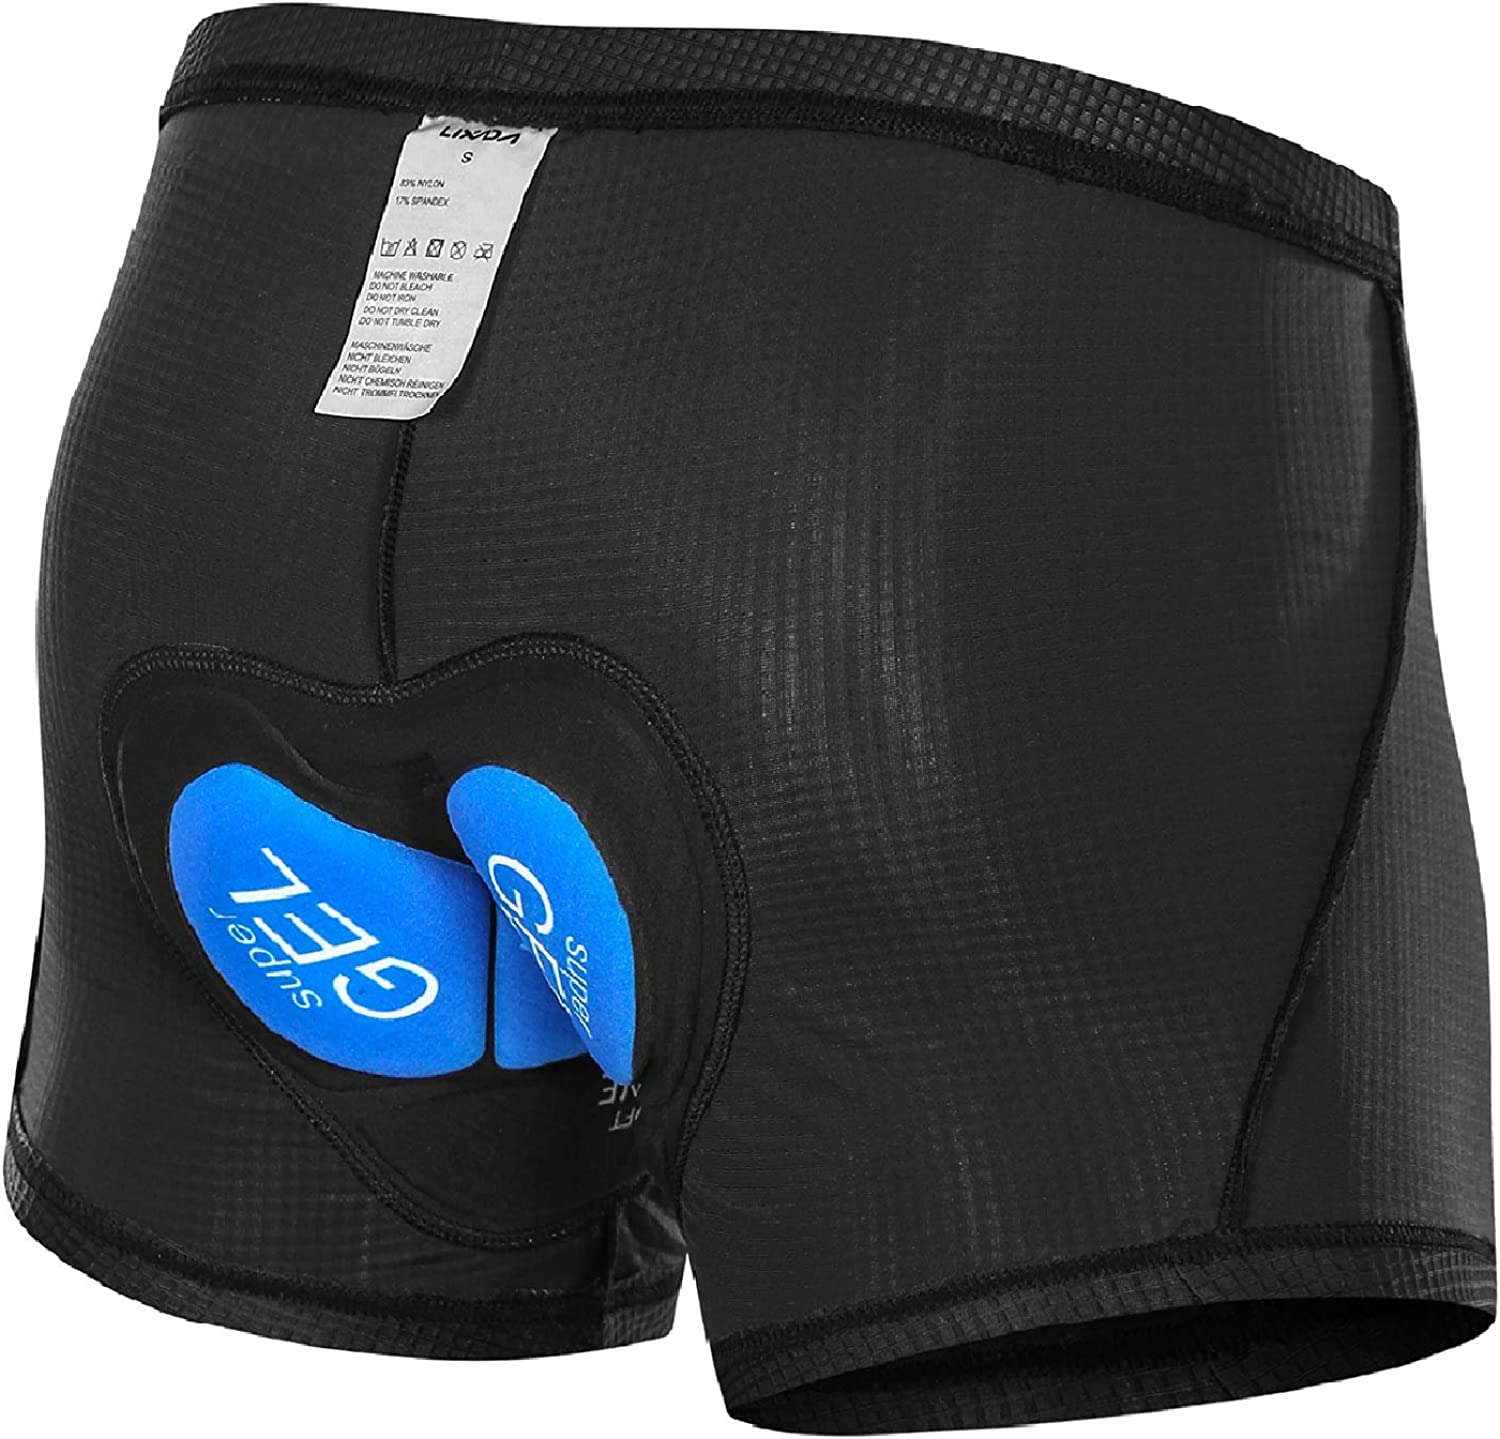 Men/'s Bike Cycling Underwear Shorts 3D Padded Breathable For Bicycle MTB Sports